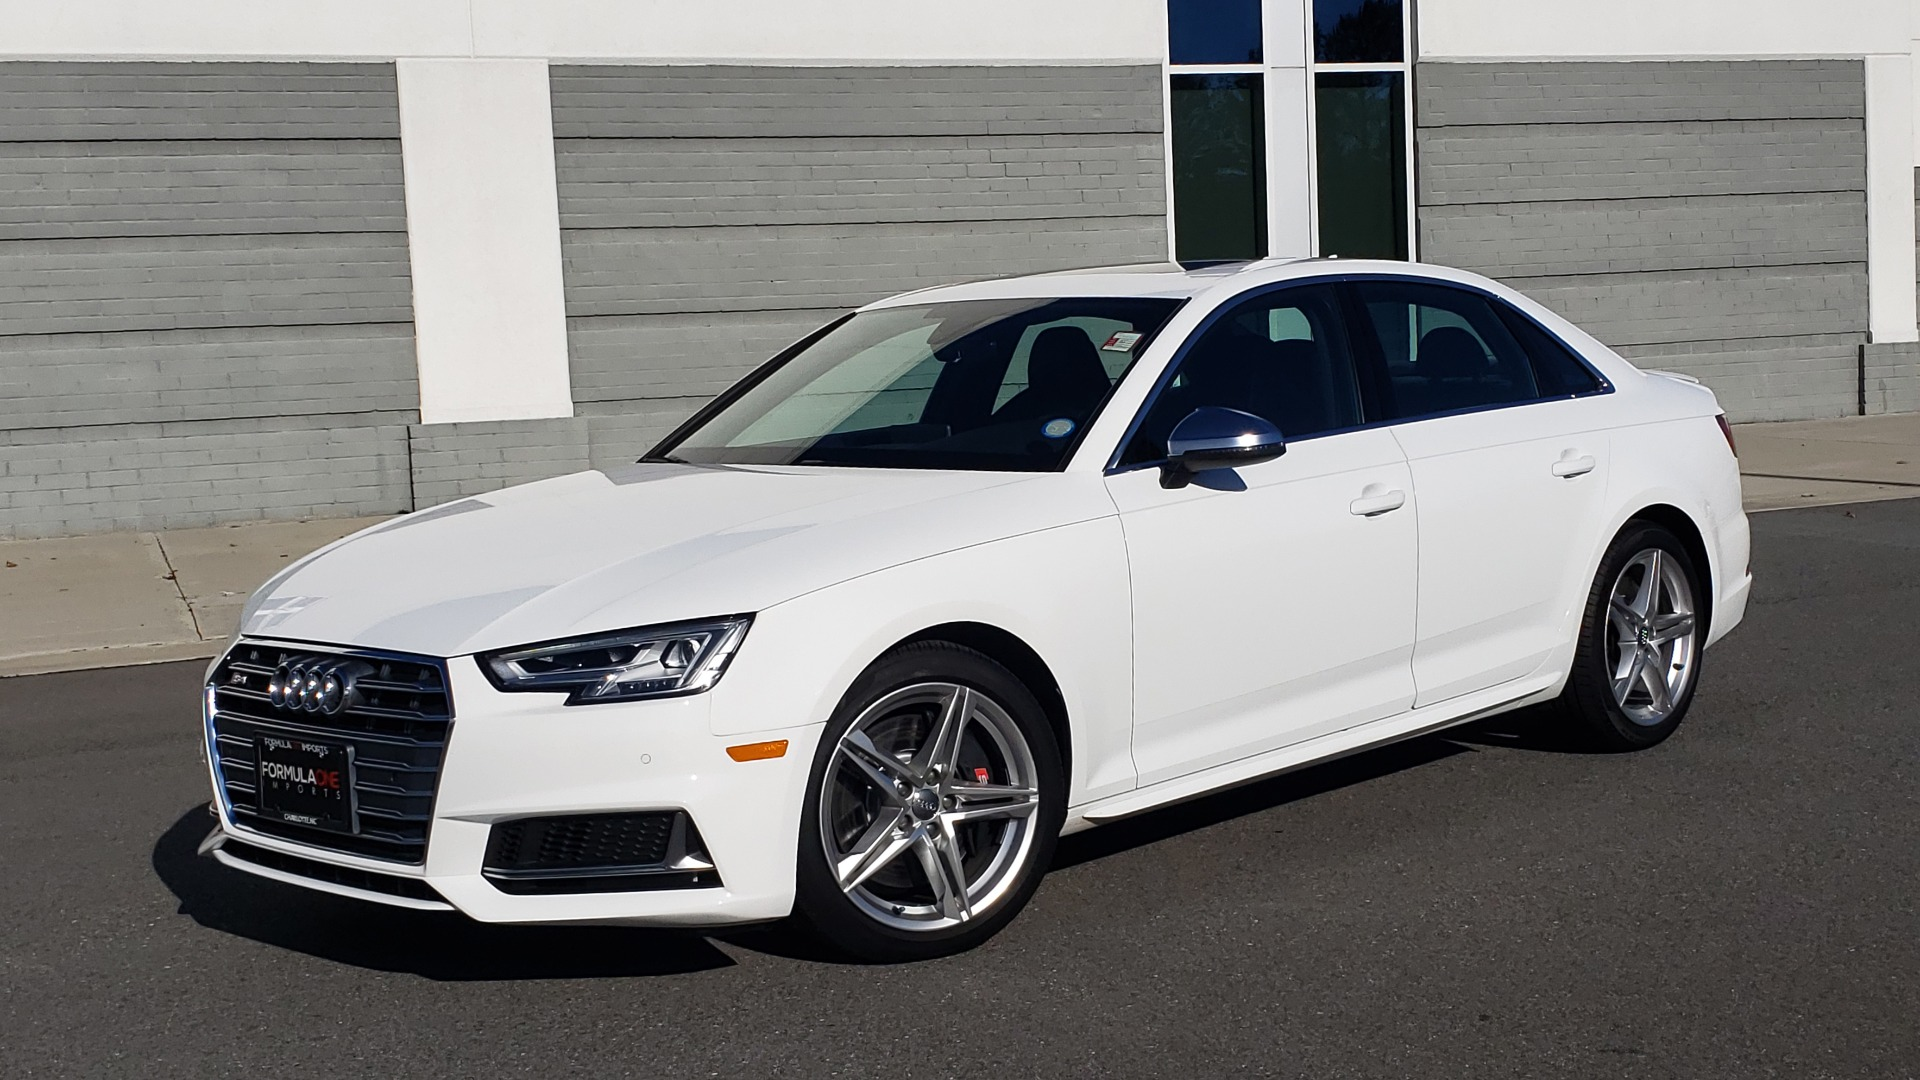 Used 2018 Audi S4 PREMIUM PLUS / TECH PKG / NAV / CLD WTHR / REARVIEW for sale Sold at Formula Imports in Charlotte NC 28227 1